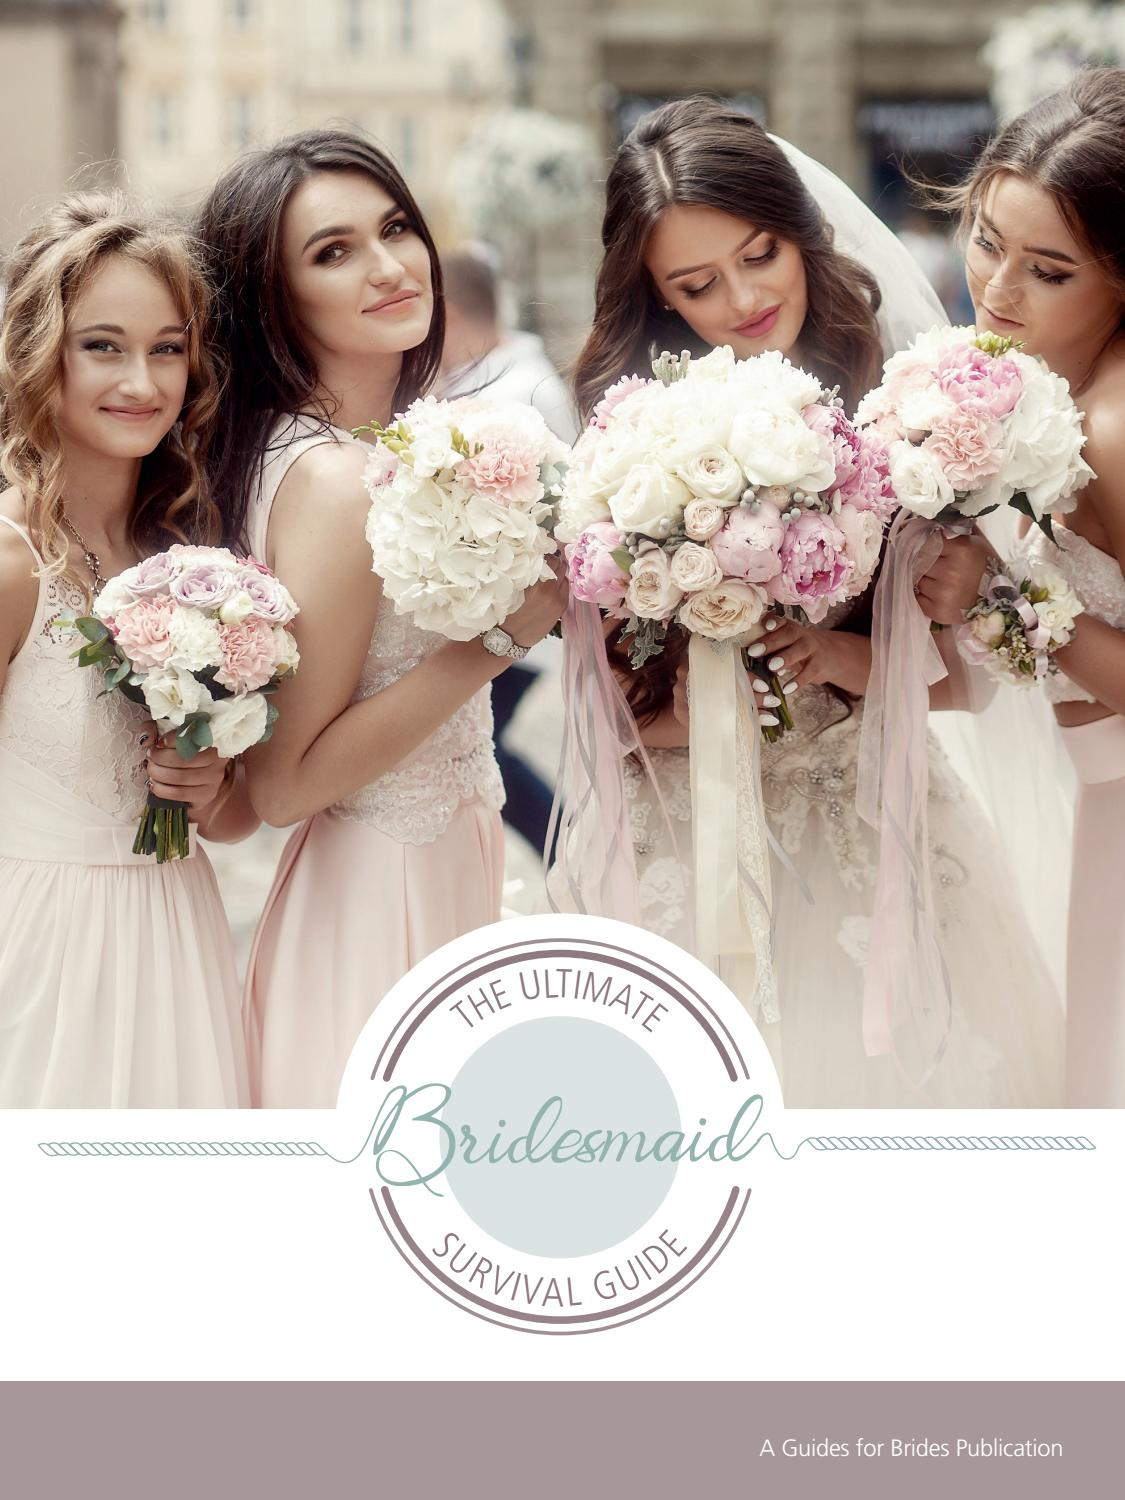 Guides For Brides The Ultimate Bridesmaids Survival Guide By Guides For Brides Issuu